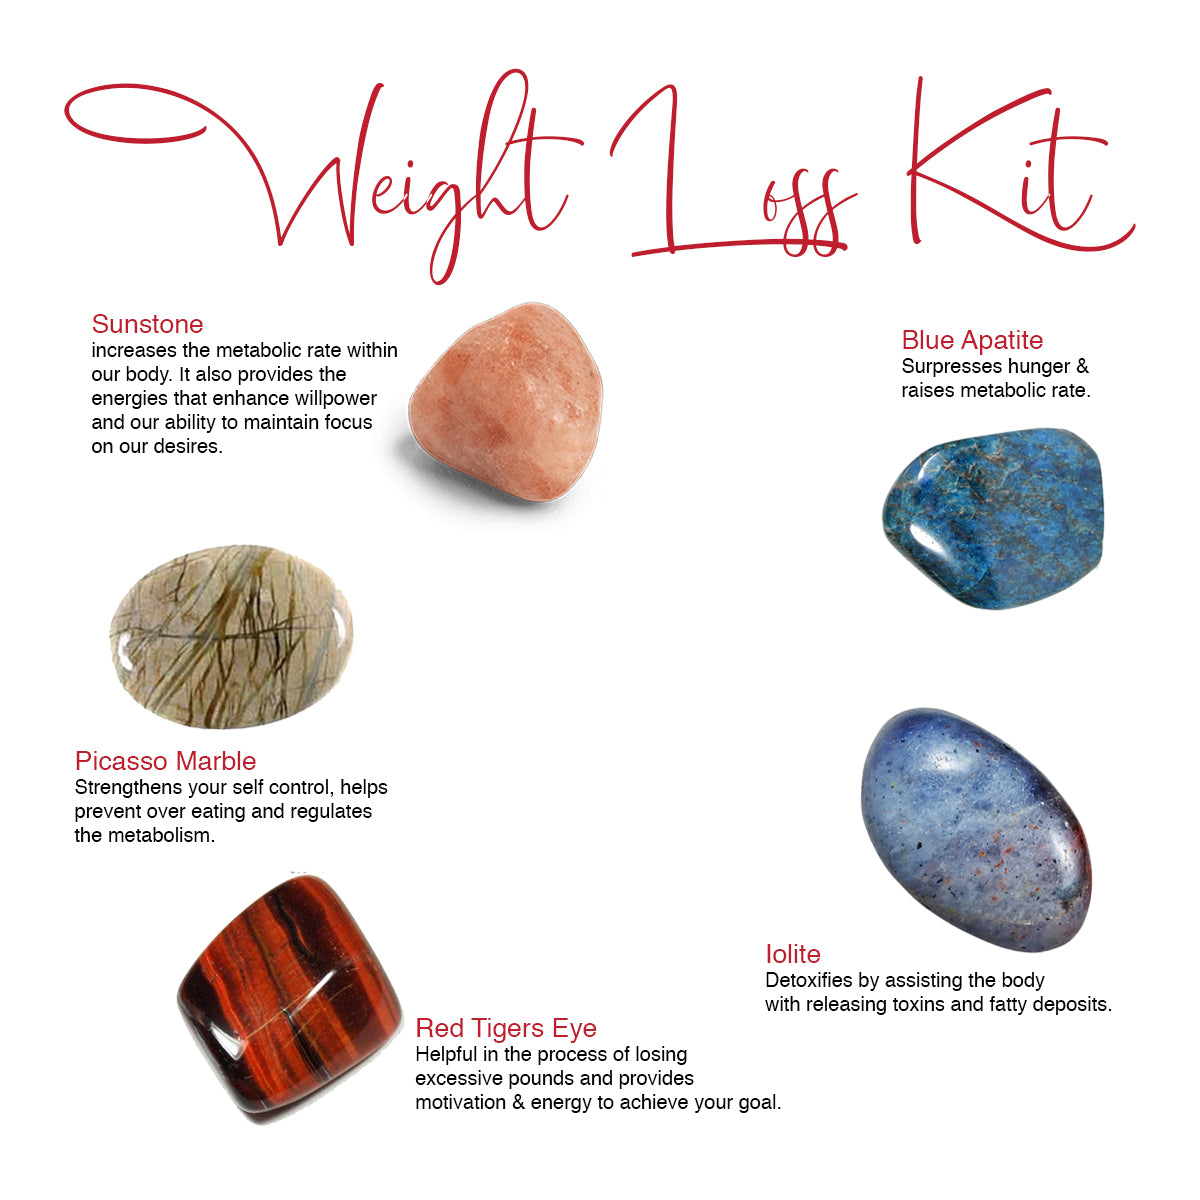 Weight Loss healing crystals | Sunstone, Picasso Marble, Red Tigers Eye, Iolite, Blue Apatite gemstones